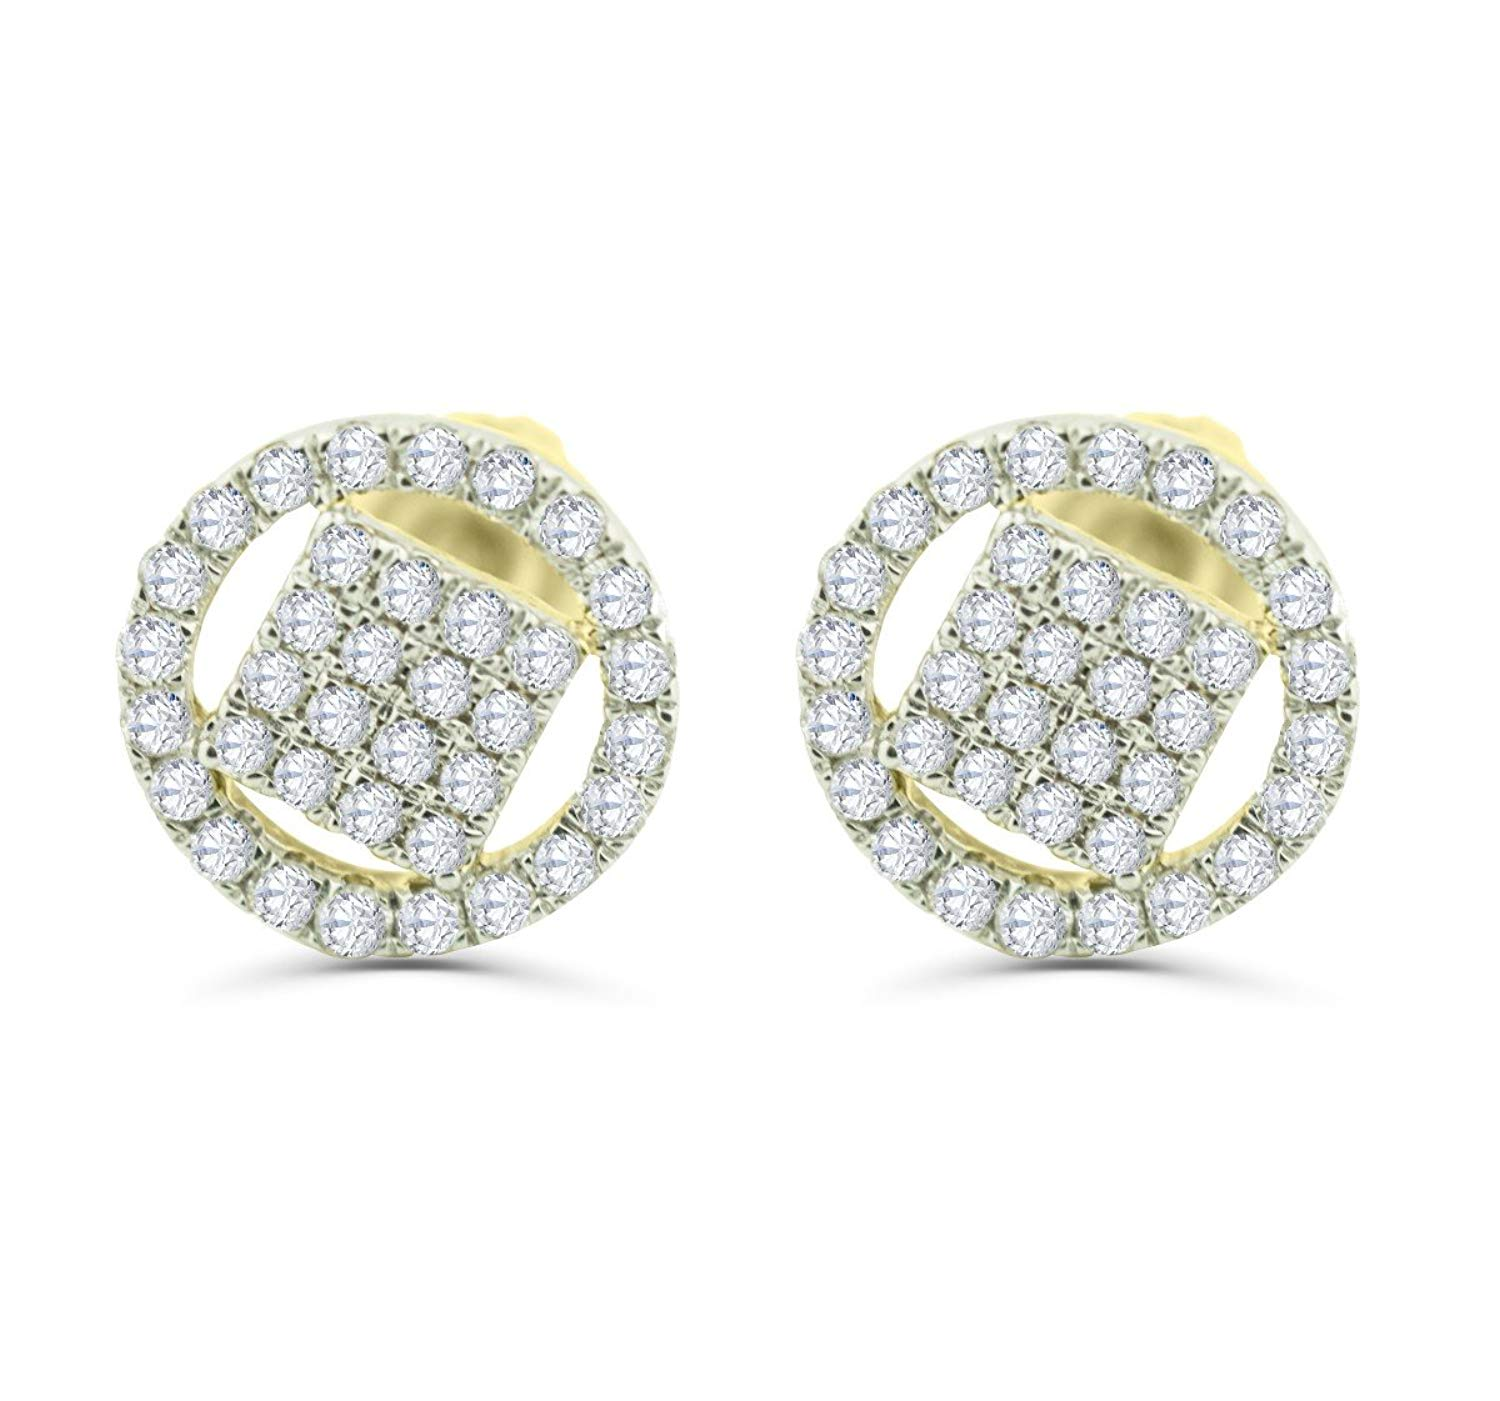 Get Quotations 10k Gold Diamond Earrings 1 3ctw Diamonds Round Cer Mens Or Womens Back 8mm